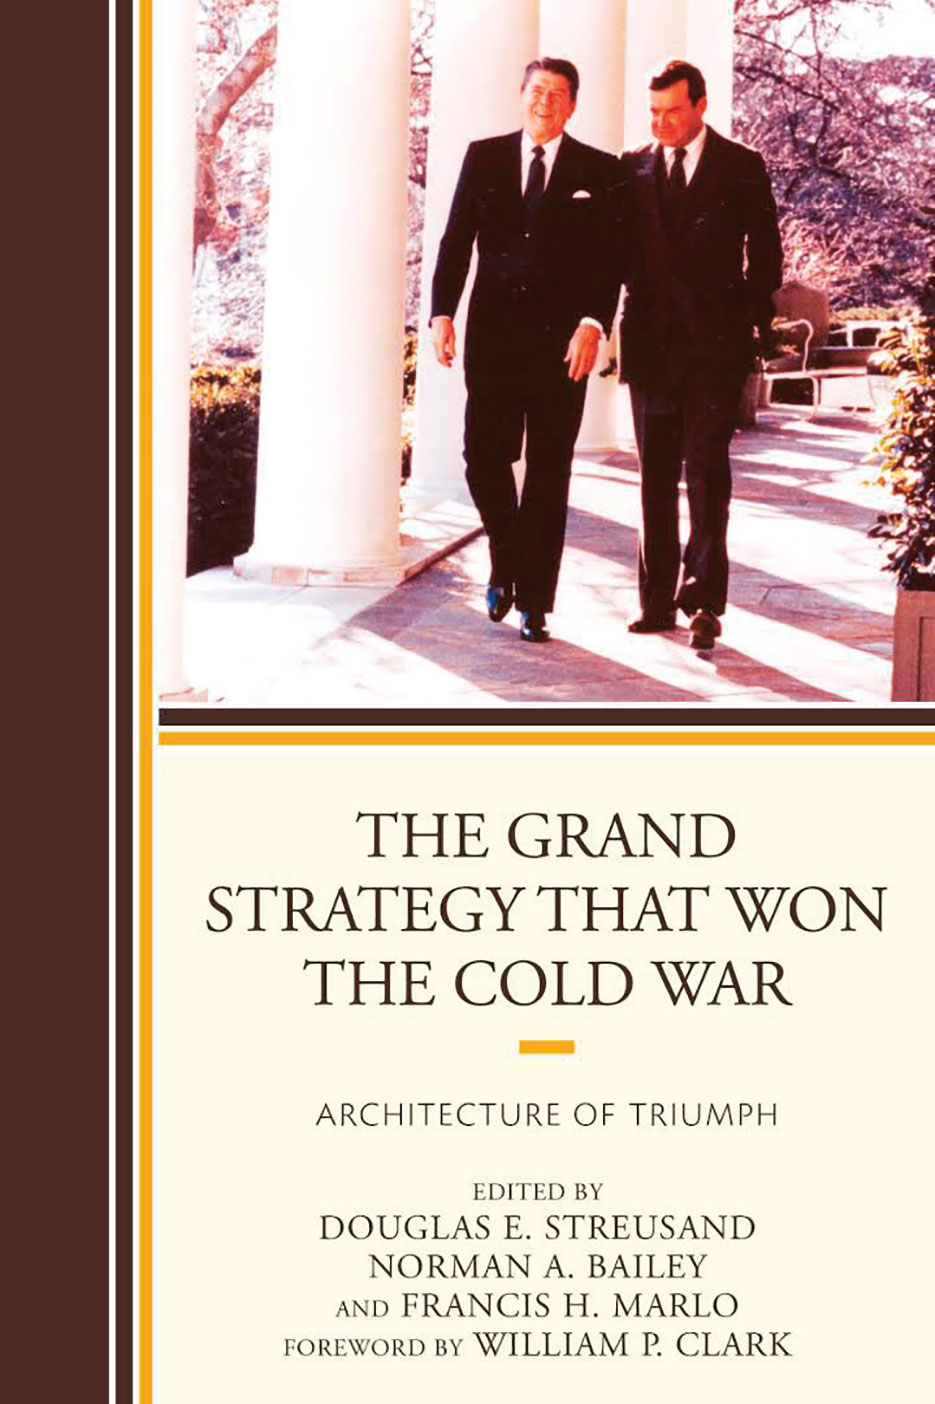 The Grand Strategy That Won the Cold War